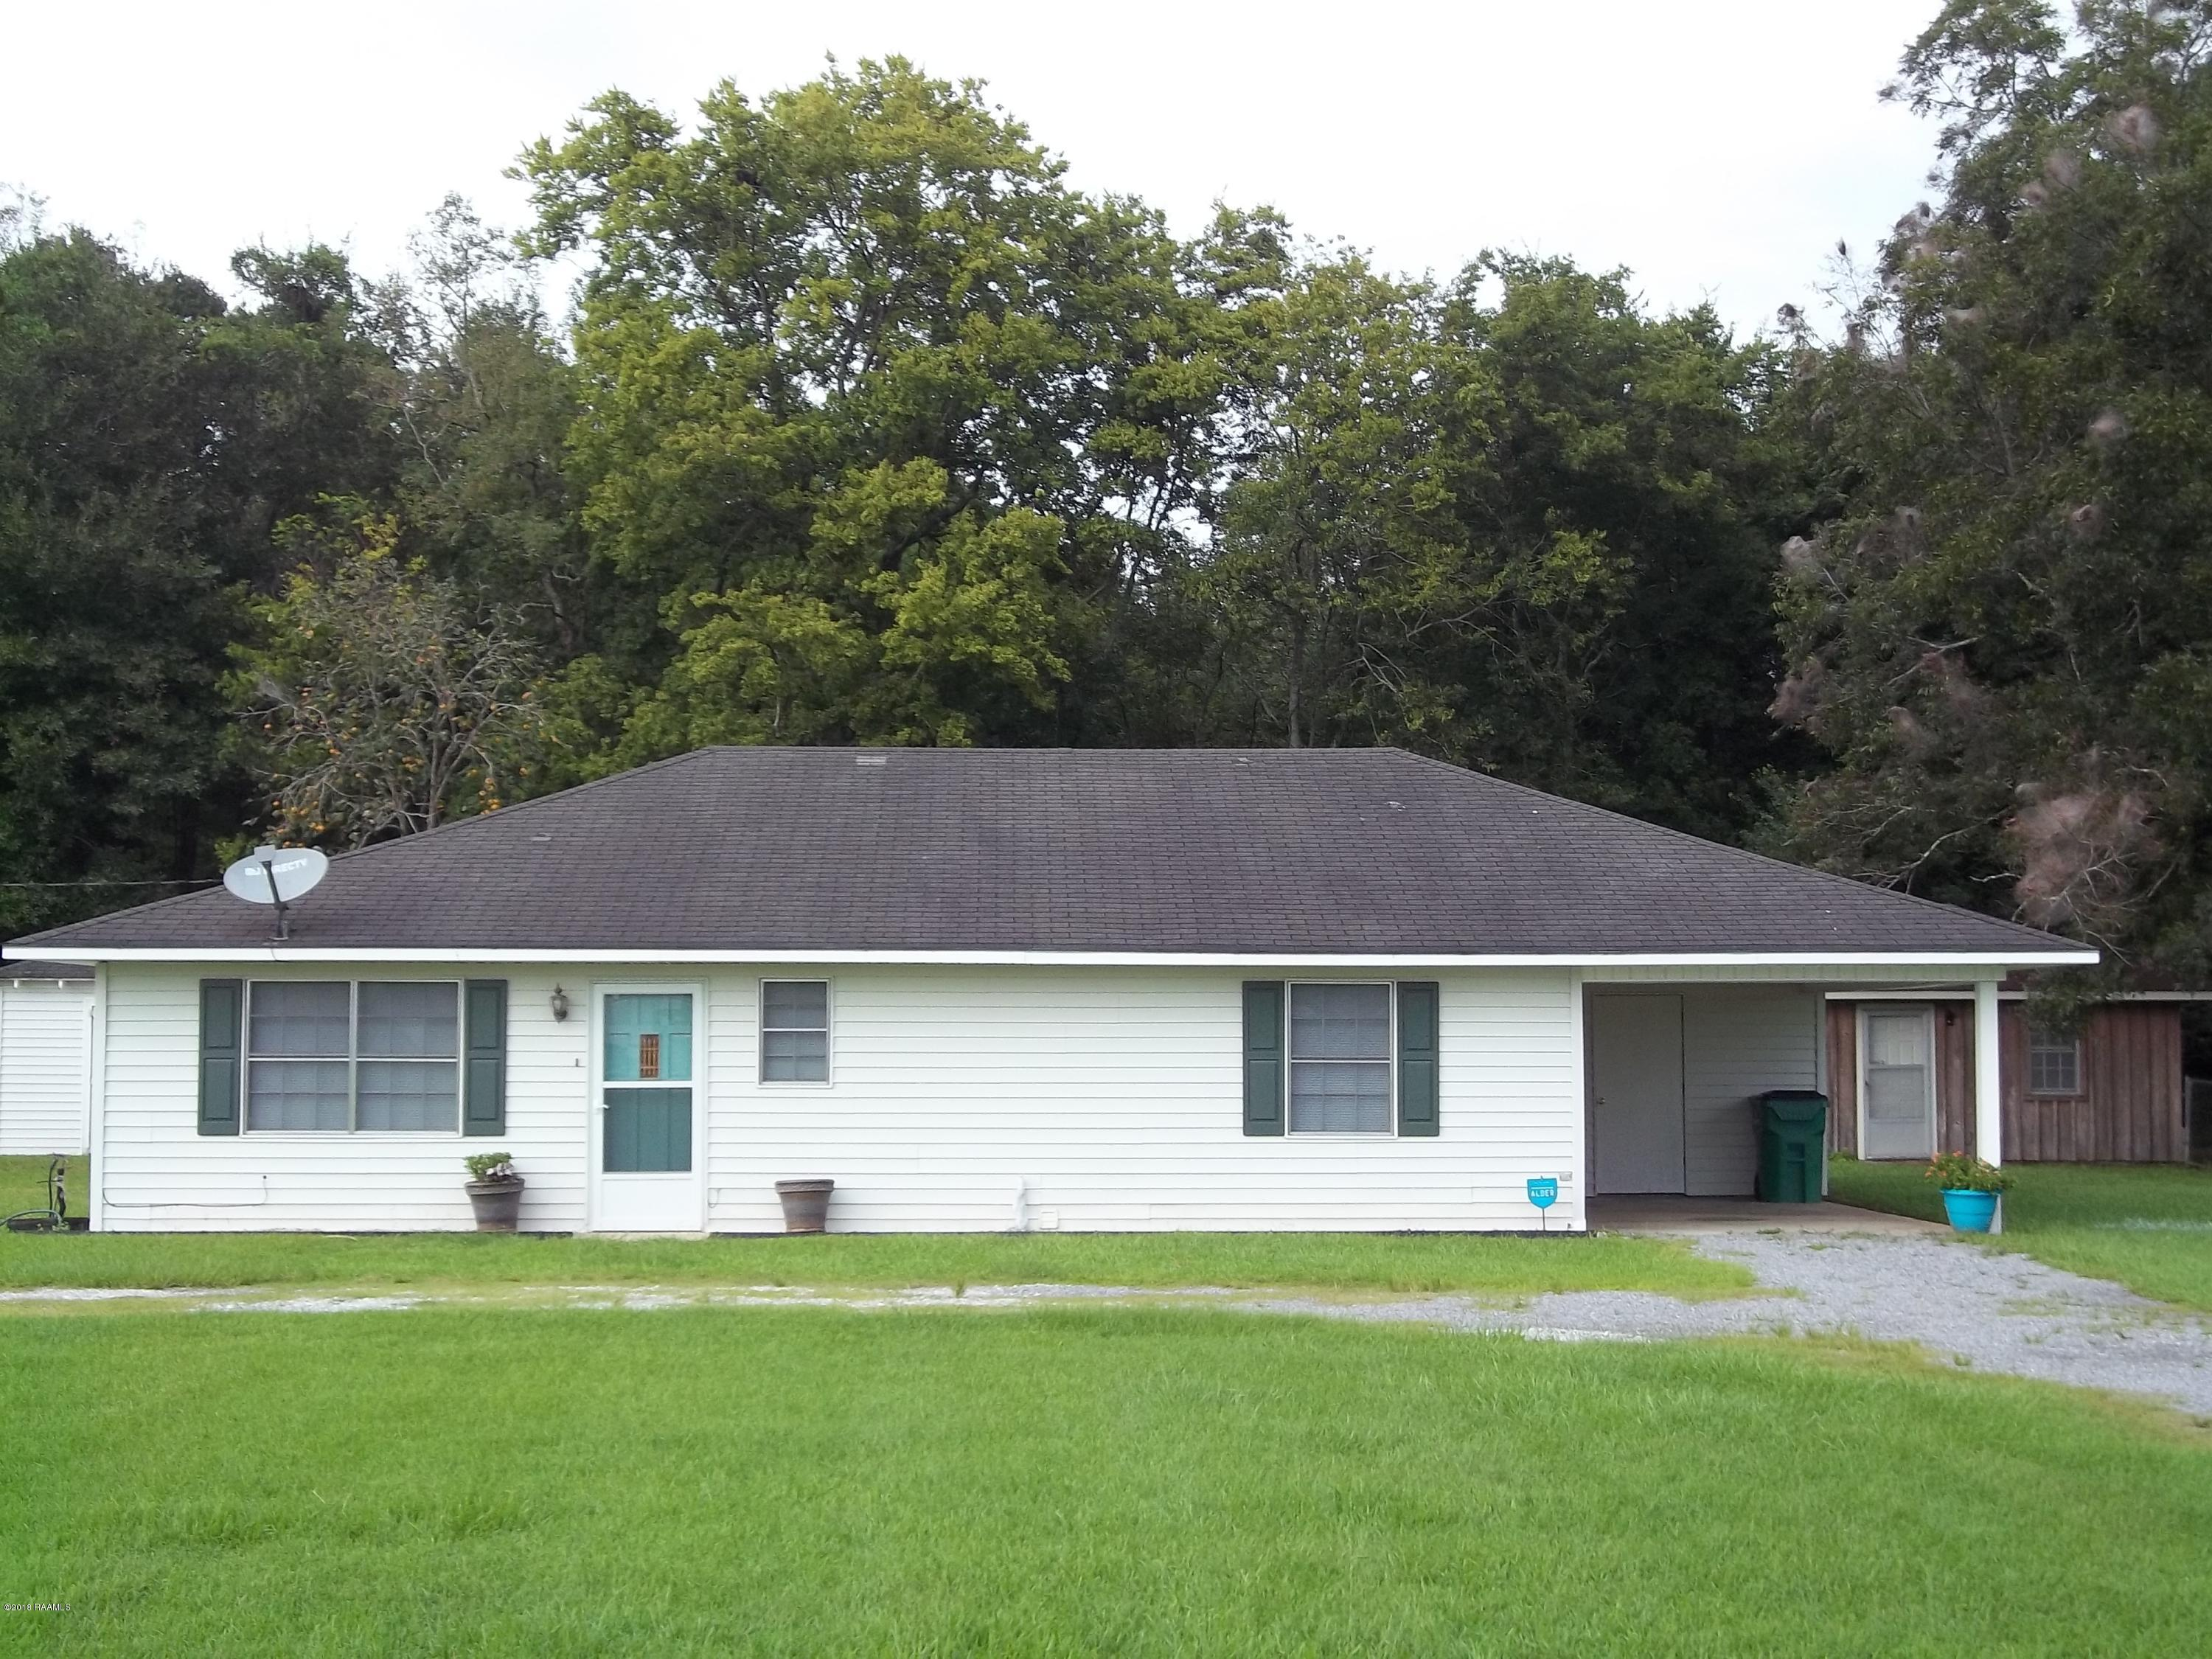 1205 Meaux Lane, Abbeville, LA 70510 Photo #1